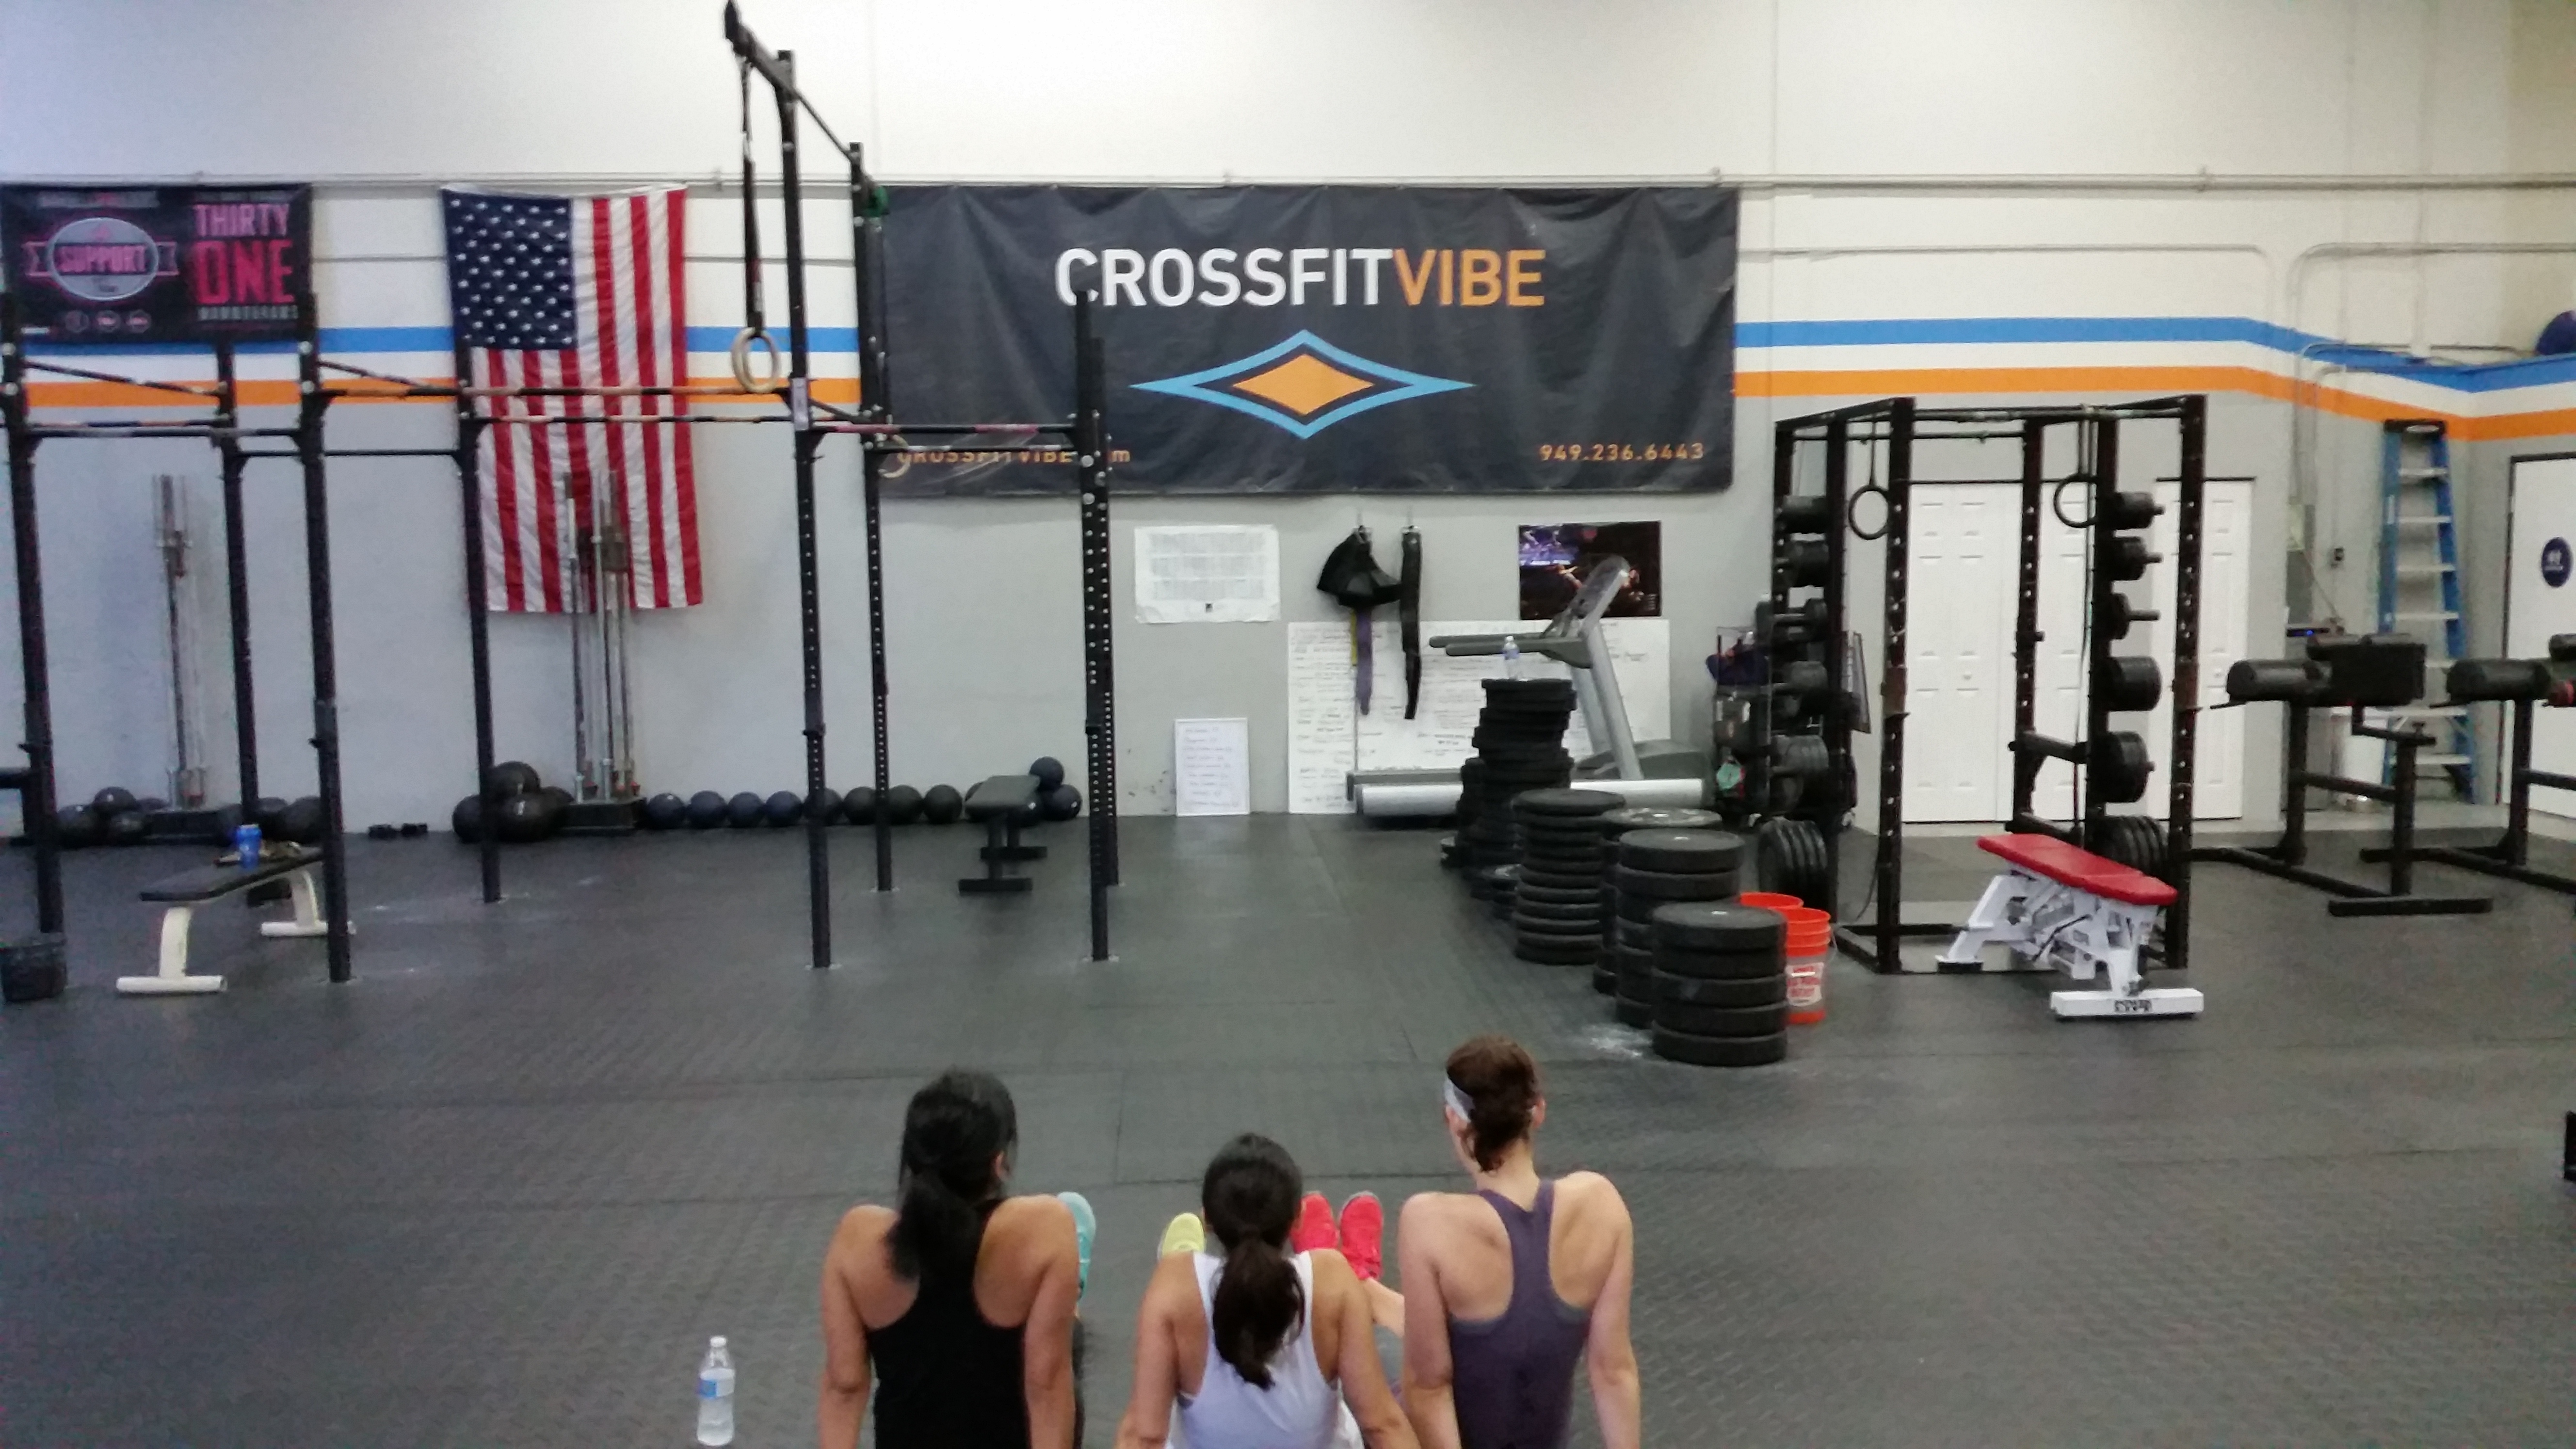 crossfitvibegroup